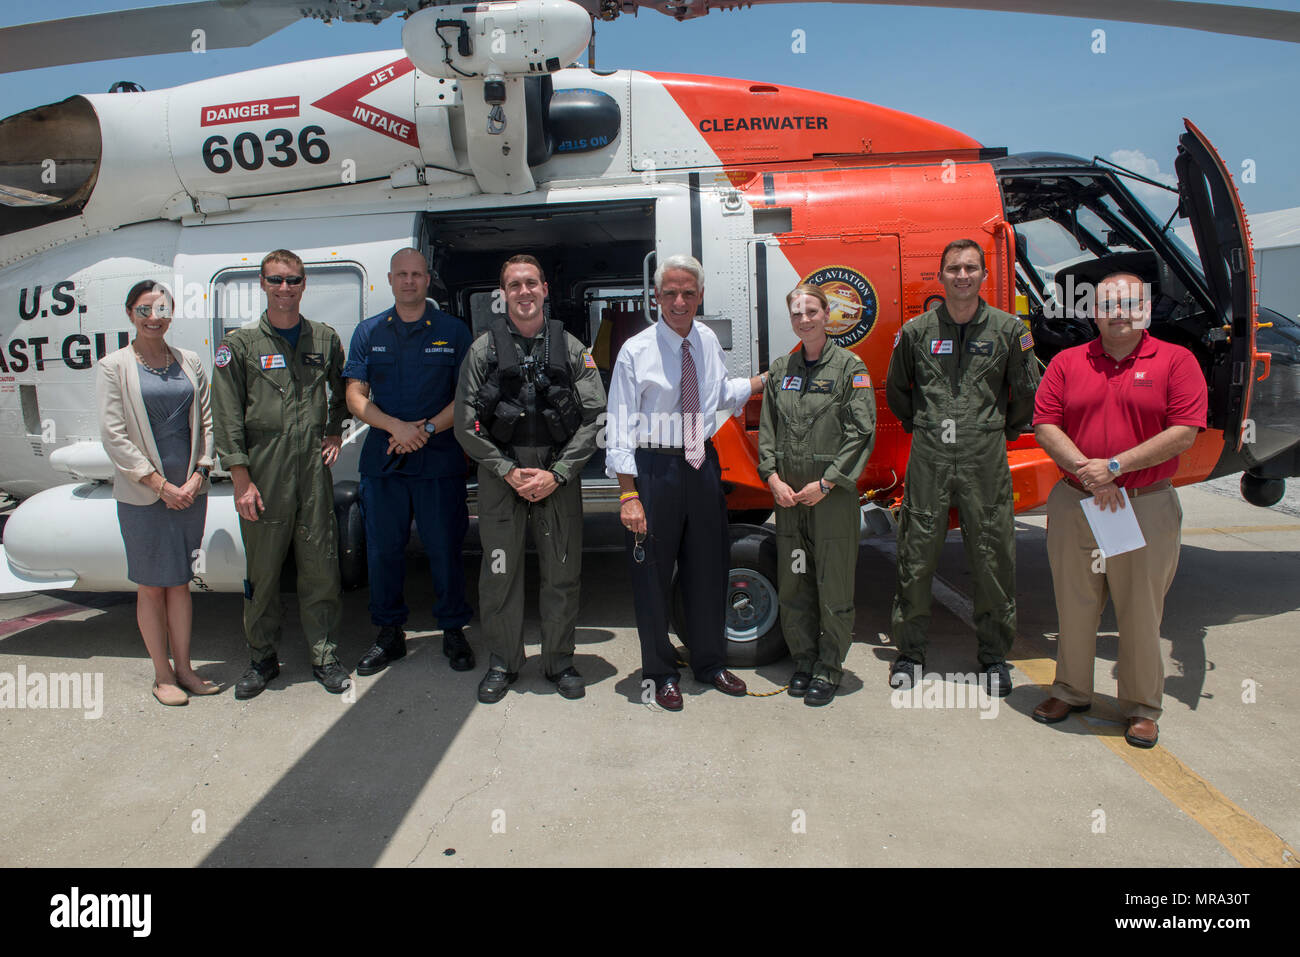 Congressman Charlie Crist, U.S. Representative for Florida's 13th District, center, meets with Air Station Clearwater crew members for a group photo Tuesday, May 30, 2017, prior to an aerial assessment of beach erosion along Pinellas County, Florida's coast. Coast Guard Air Station Clearwater MH-60 Jayhawk helicopter crew members provided the overflight for the congressman and Army Corps of Engineers personnel. U.S. Coast Guard by Petty Officer 1st Class Michael De Nyse - Stock Image